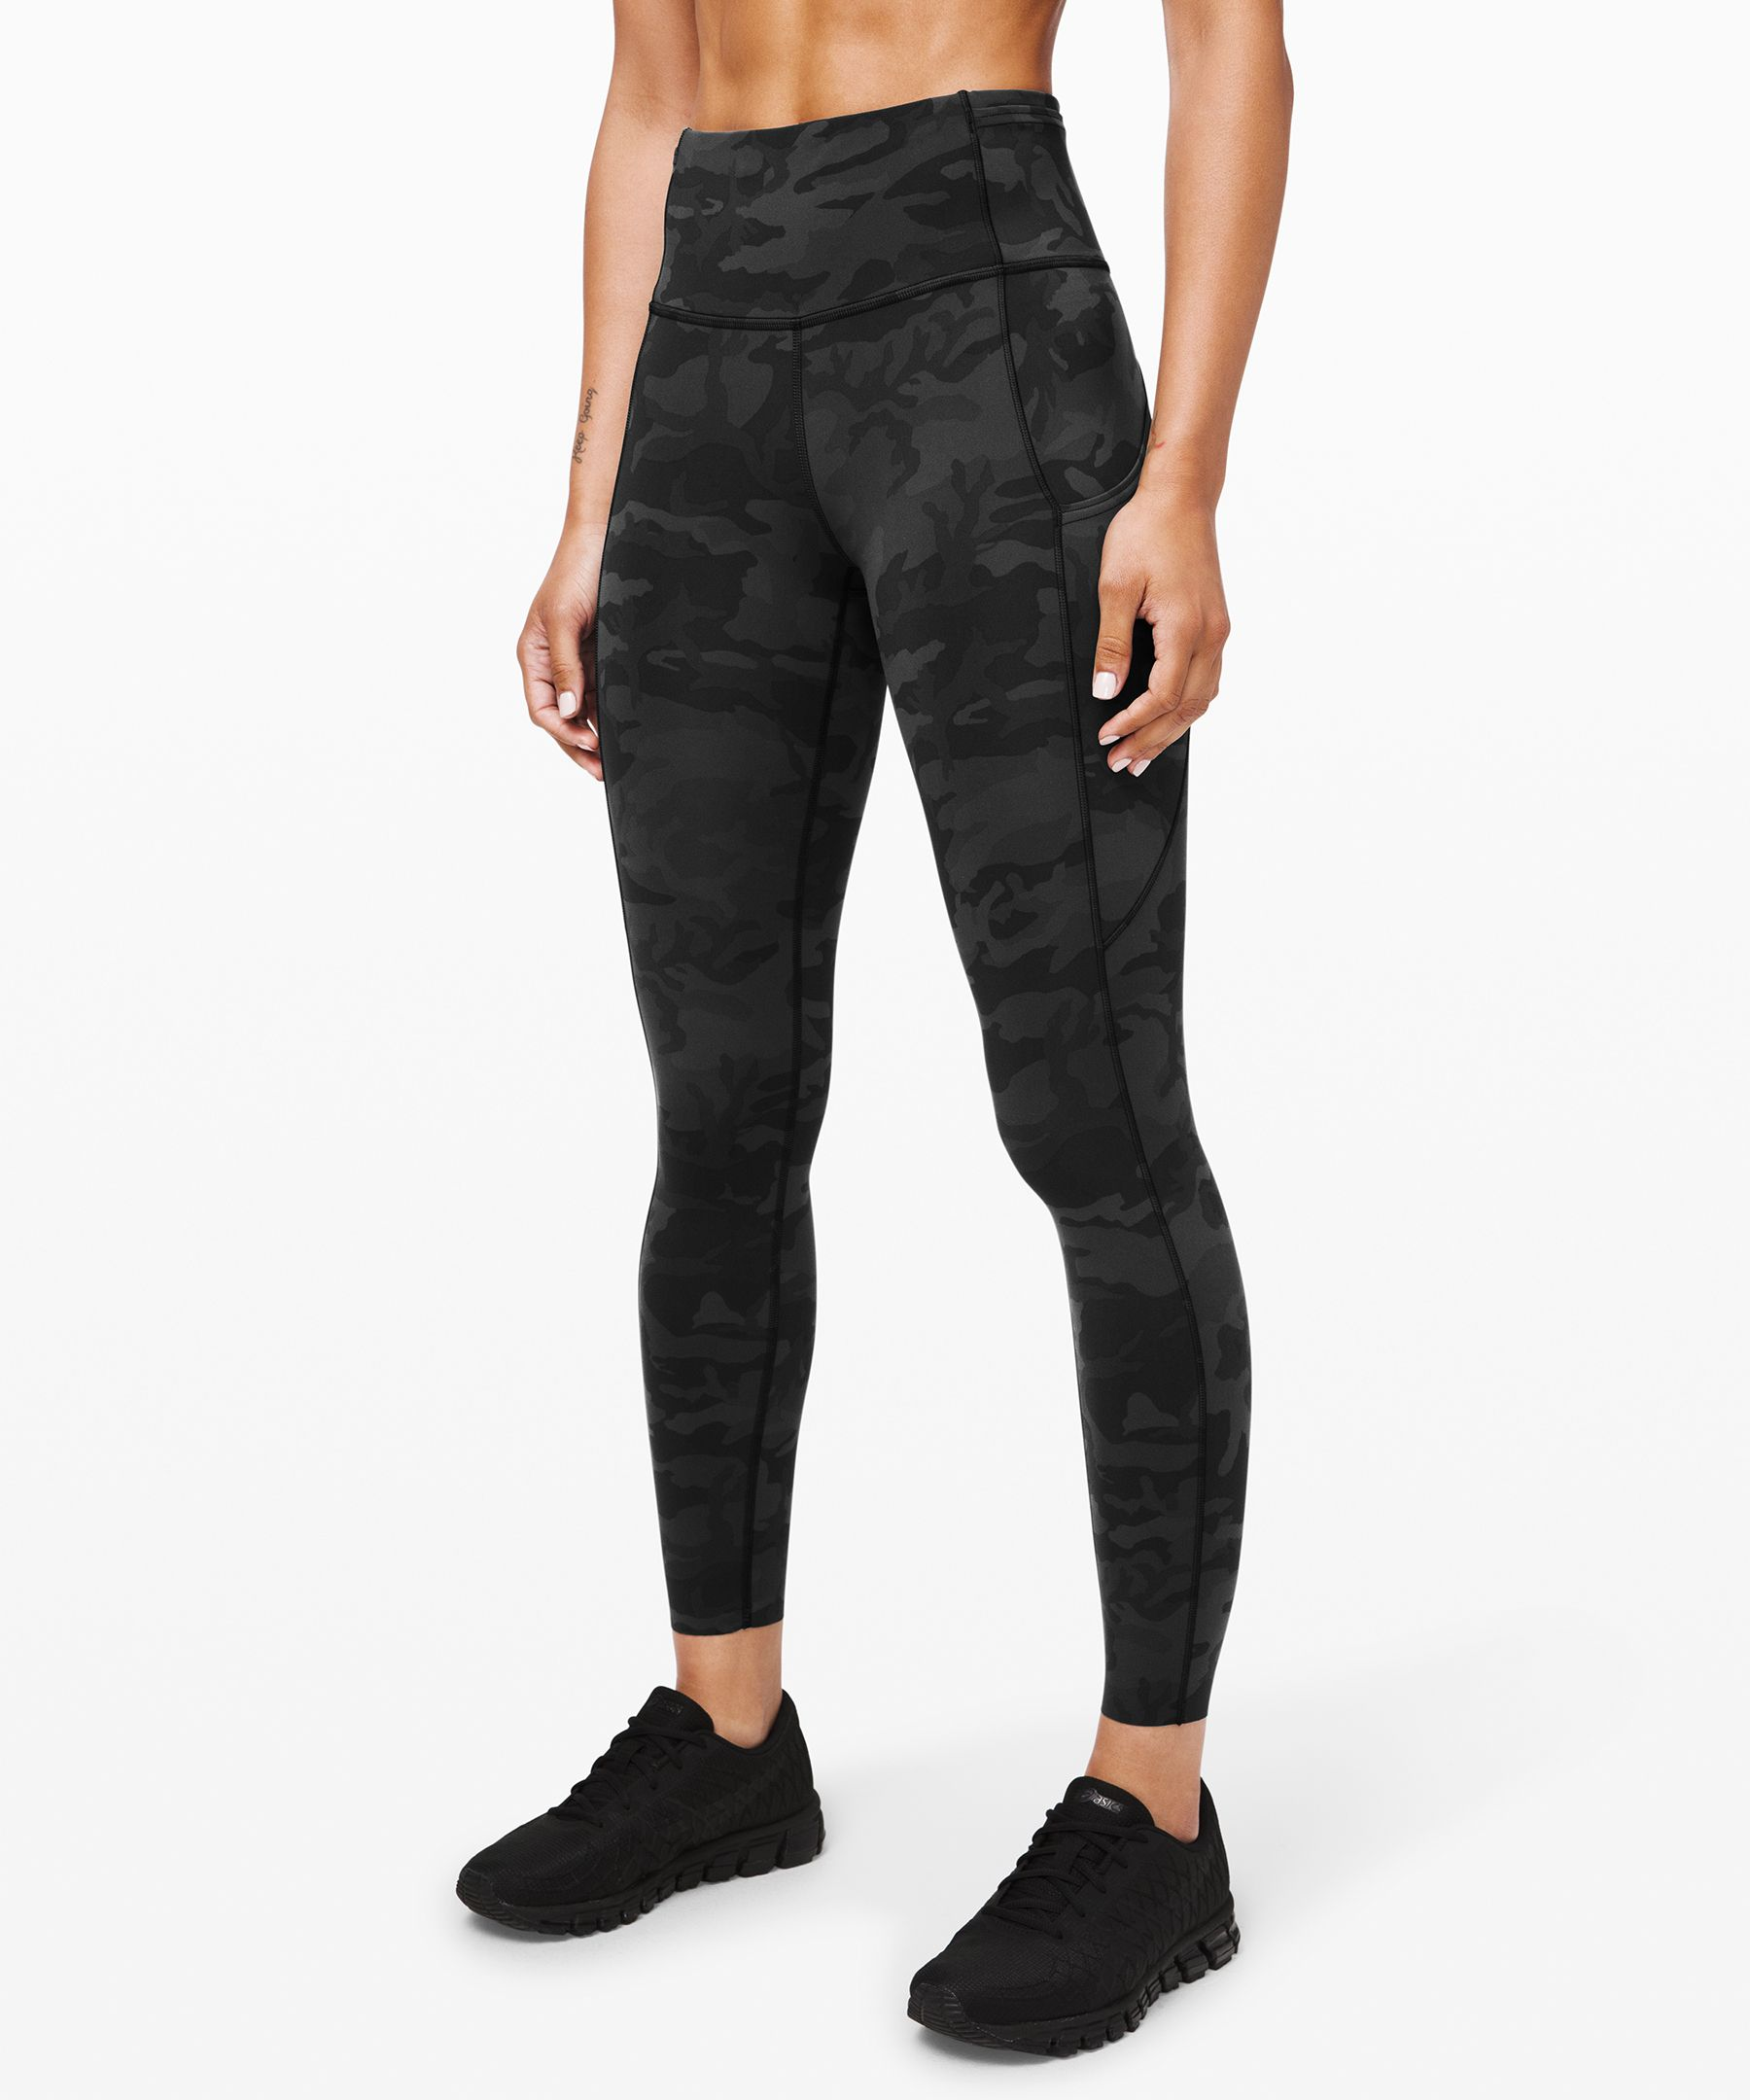 "Fast And Free Tight Ii 25"" Non Reflective Nulux New Nulux™ by Lululemon"